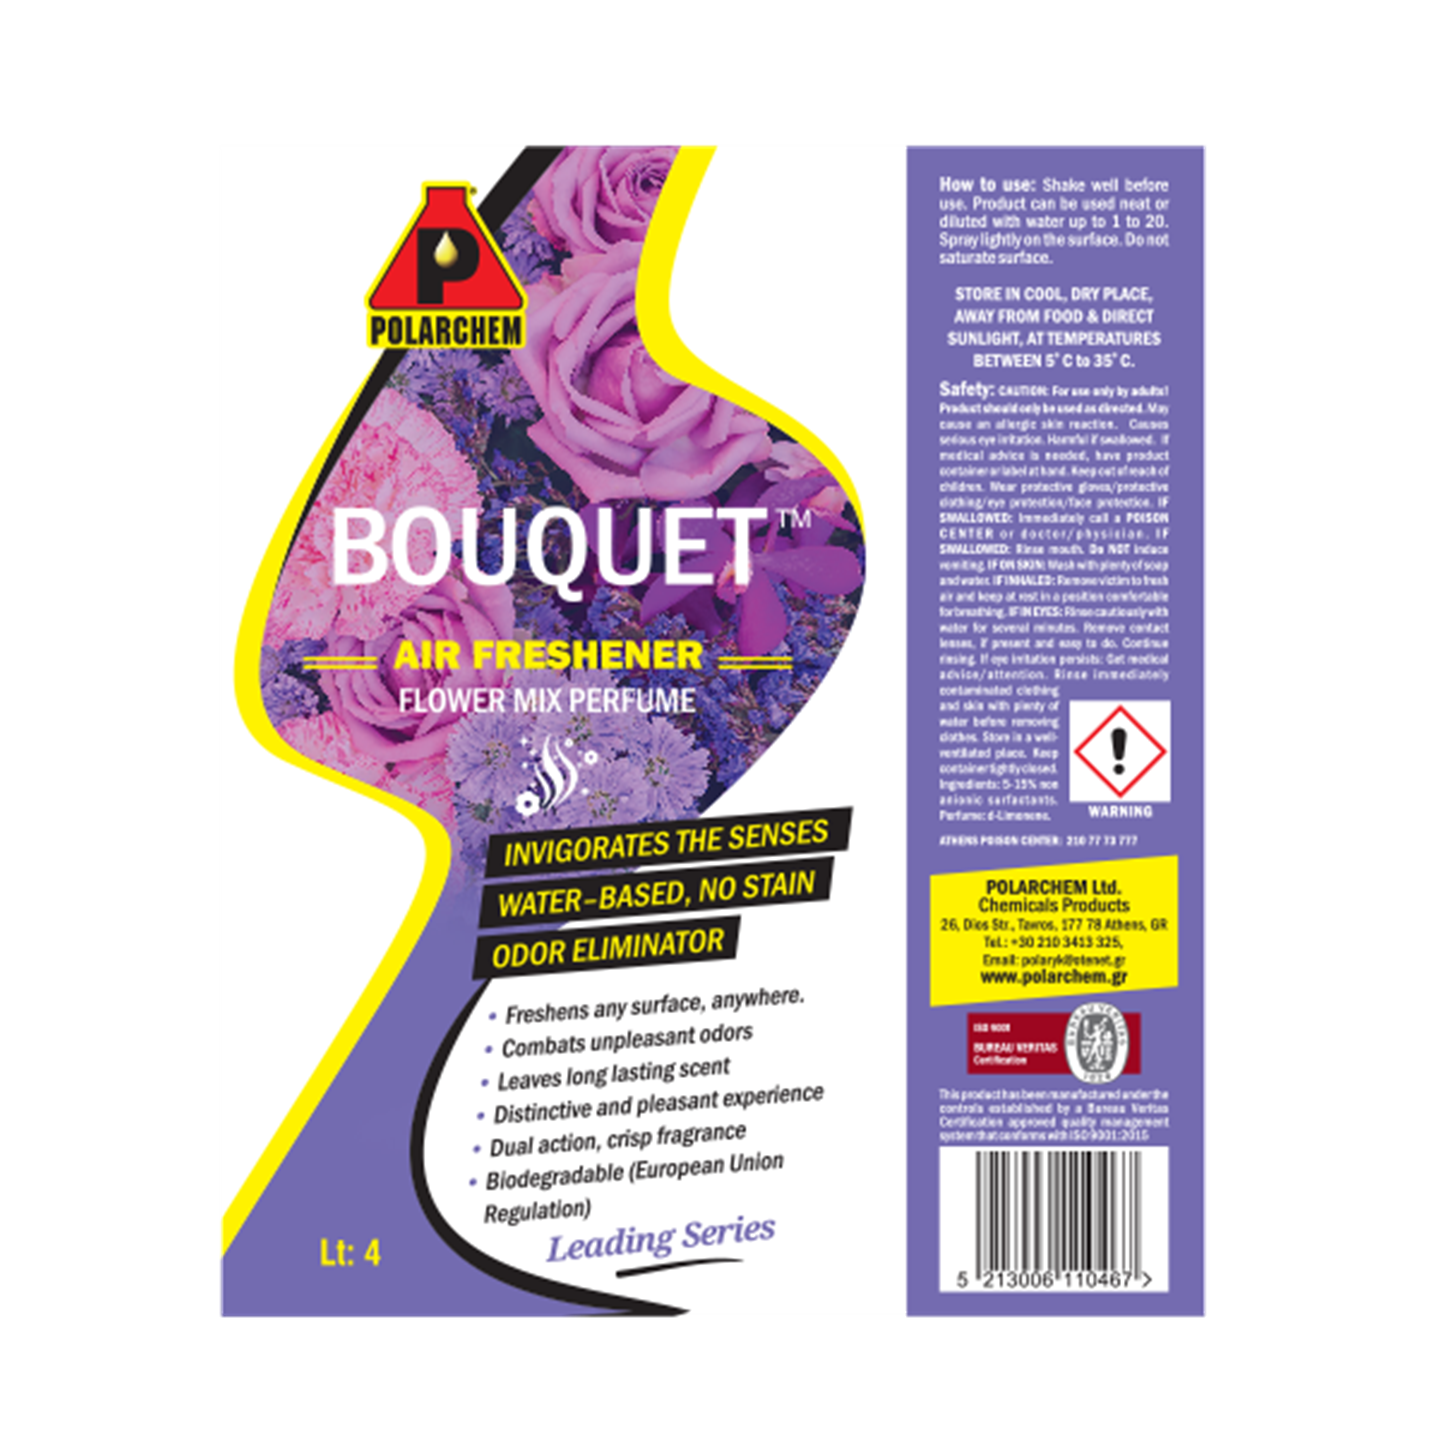 BOUQUET Air freshener